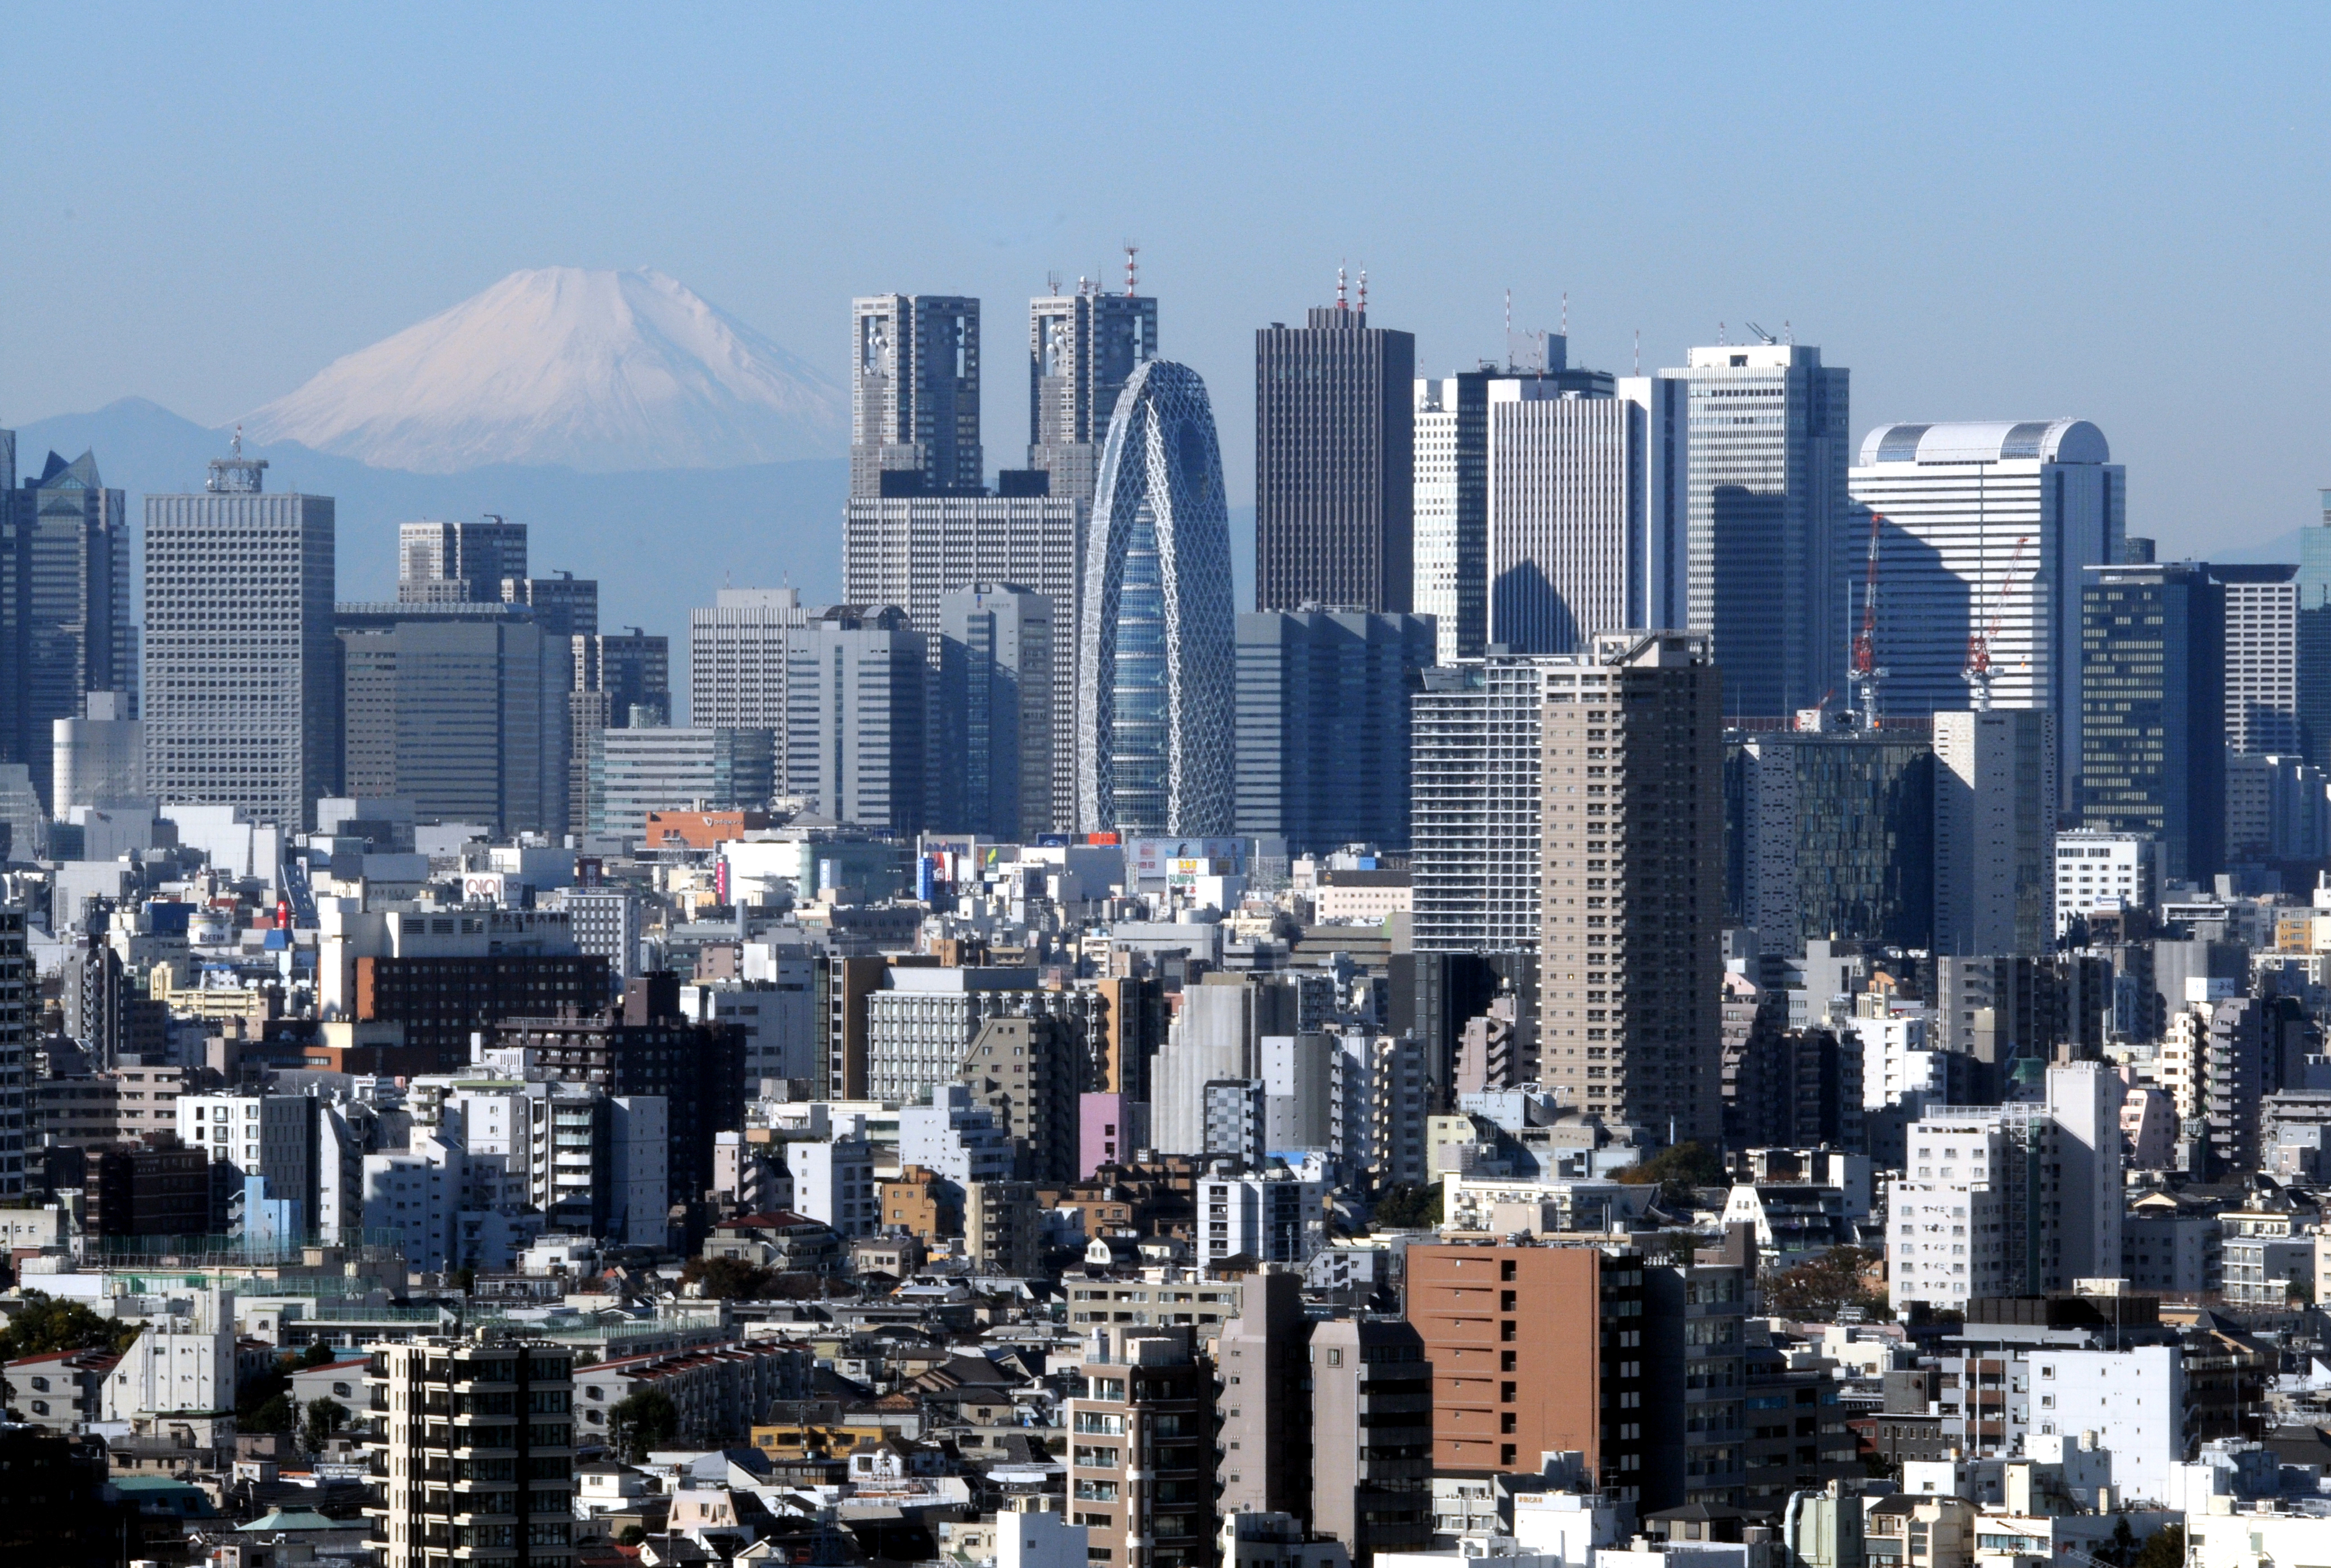 Concrete peaks: Mount Fuji, shown in December, provides a dramatic backdrop for the twin towers of City Hall and the dozens of other skyscrapers that have been erected on the west side of Shinjuku Station since the war.   SATOKO KAWASAKI